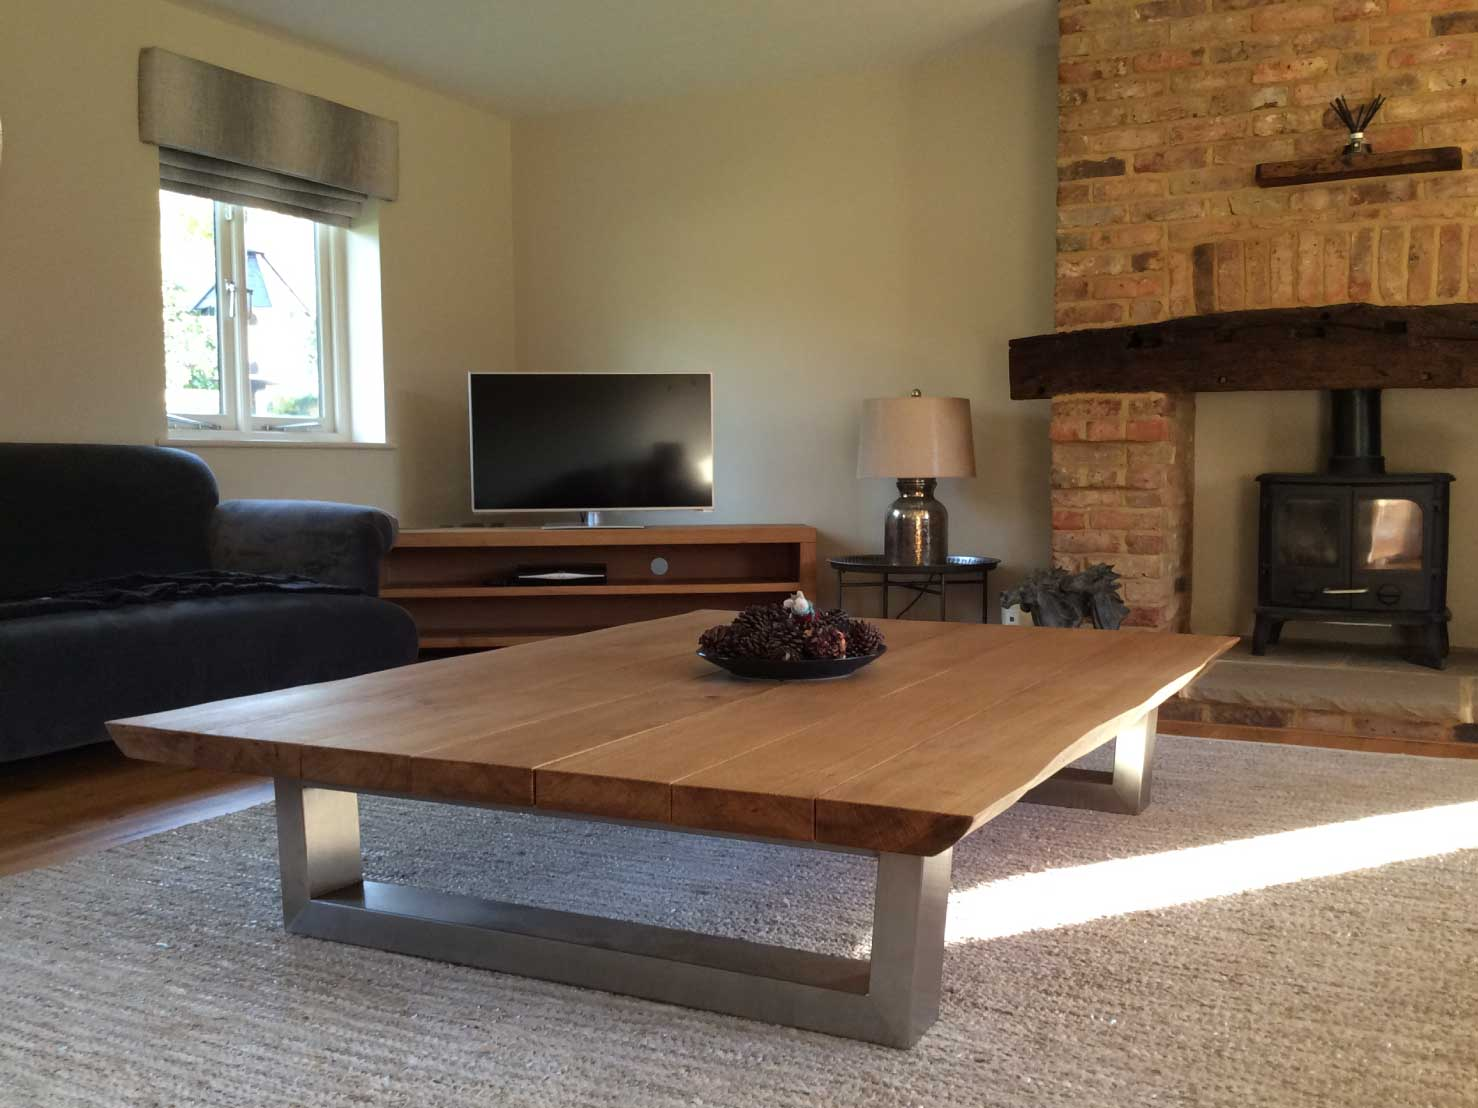 large-oak-coffee-table-from-abacus-tables-komodo-live-edge-with-stainless-base-project-364-v1